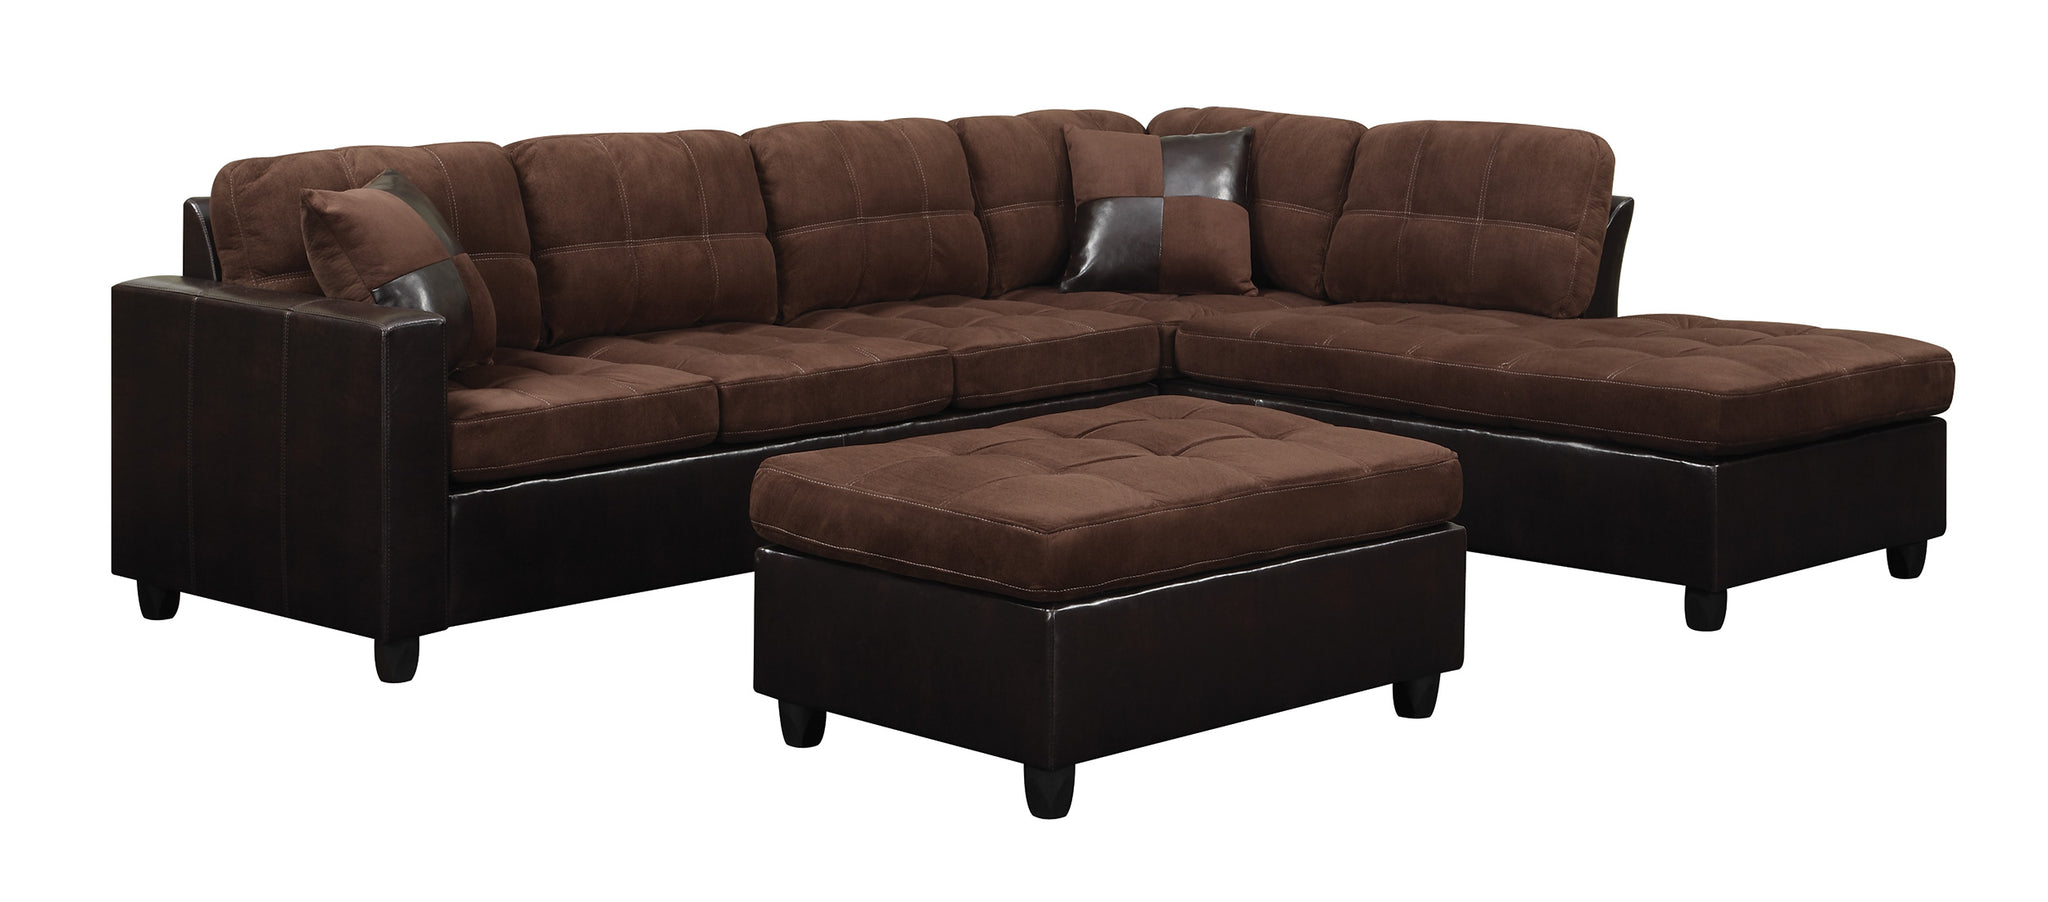 Coaster 505655 Mallory Chocolate Reversible Sectional Sofa Ottoman ...